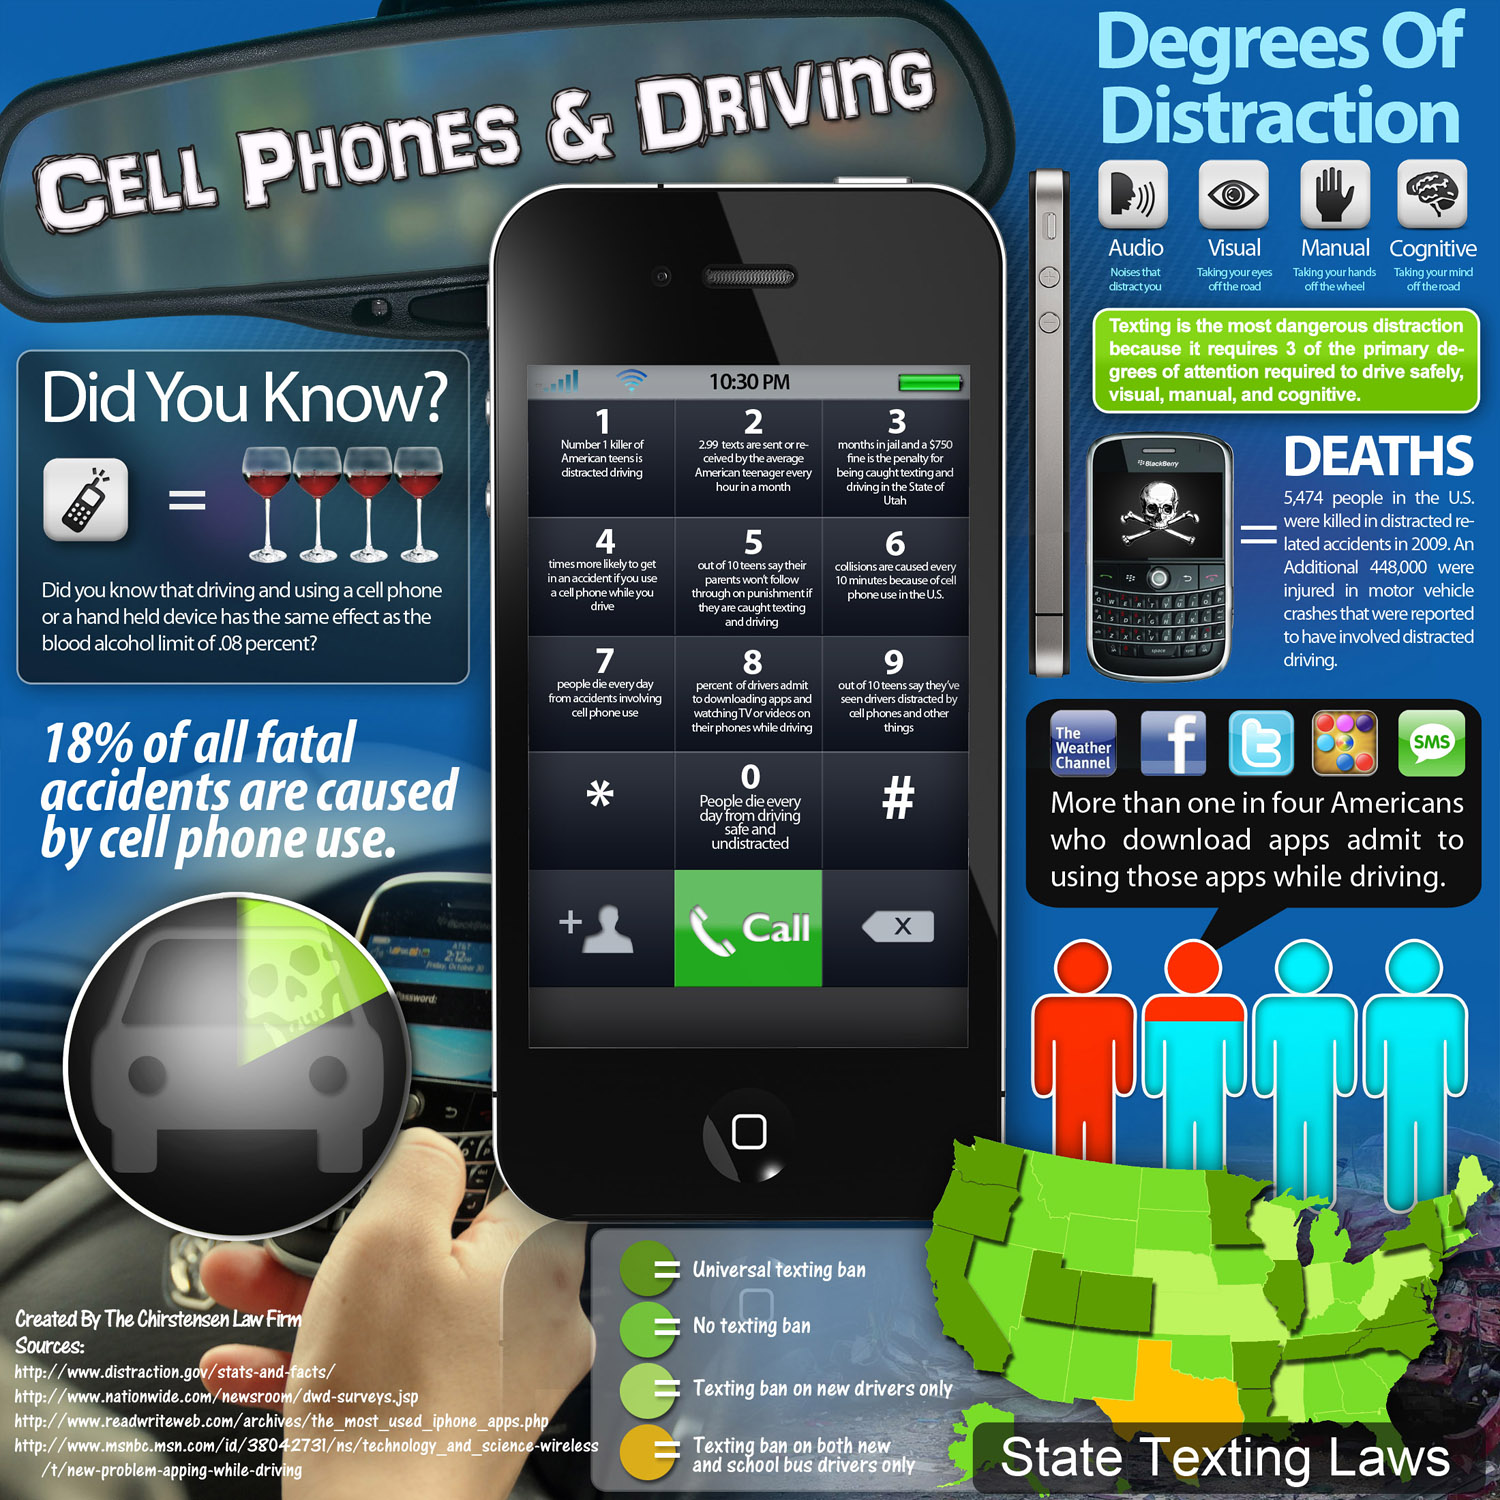 Texting: The most dangerous driving distraction